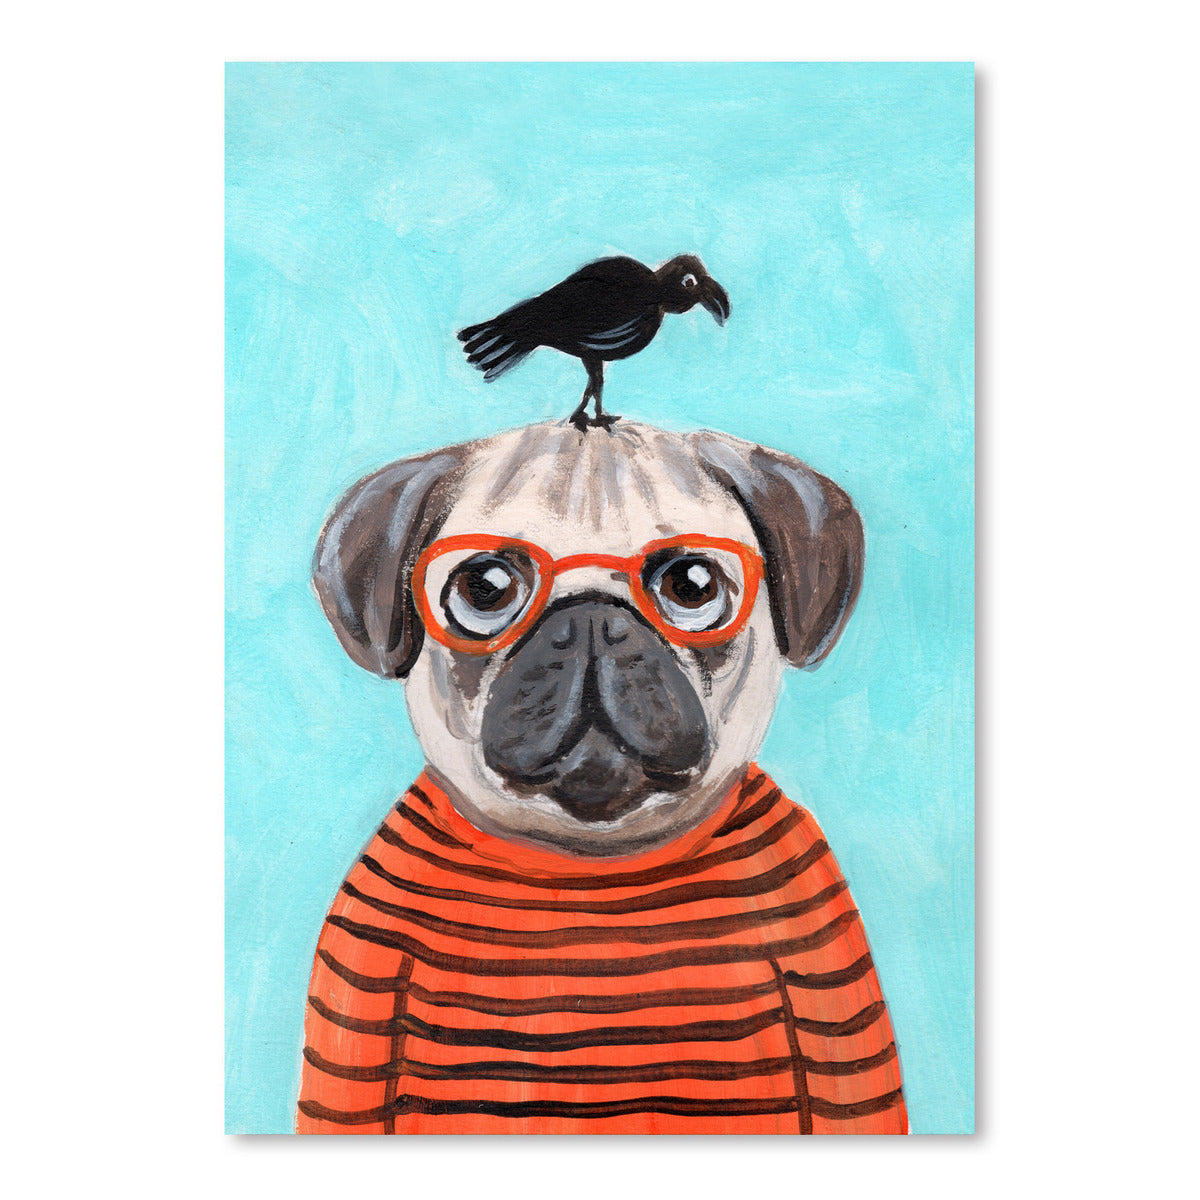 Pug With Craw by Coco de Paris - Art Print - Americanflat